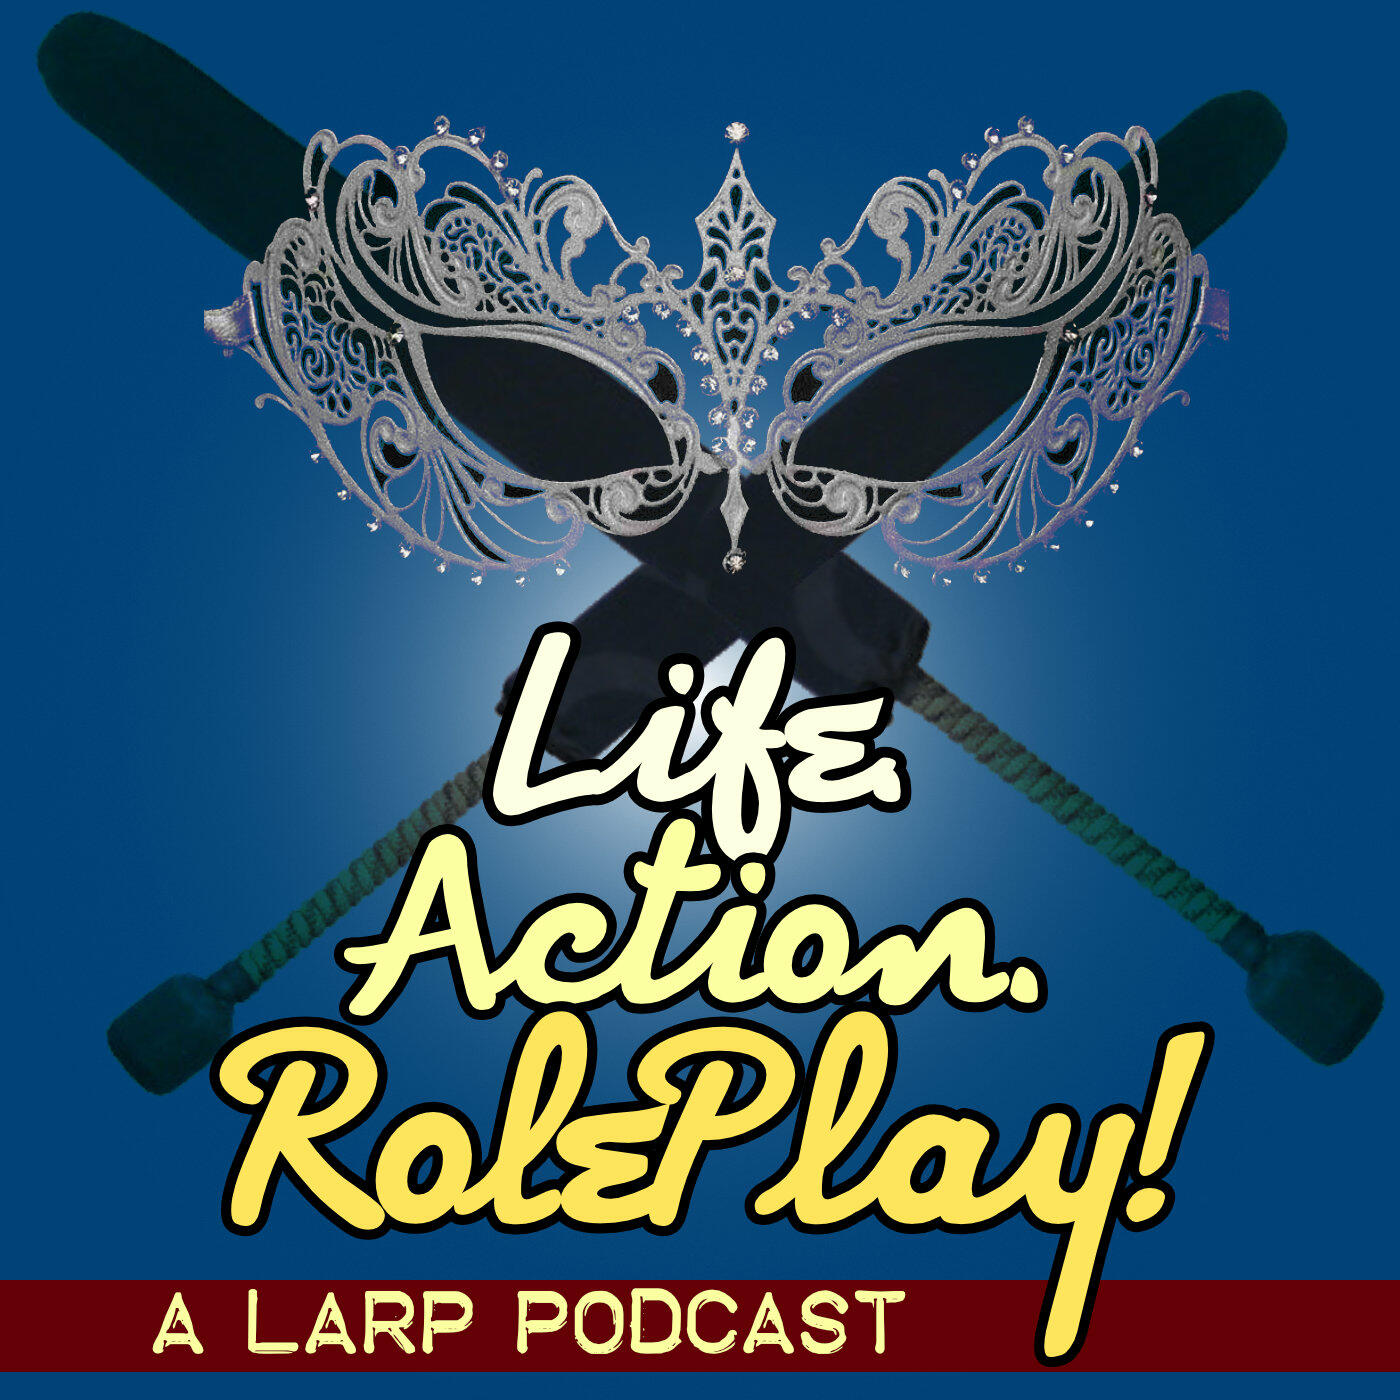 Life. Action. RolePlay! A LARP Podcast